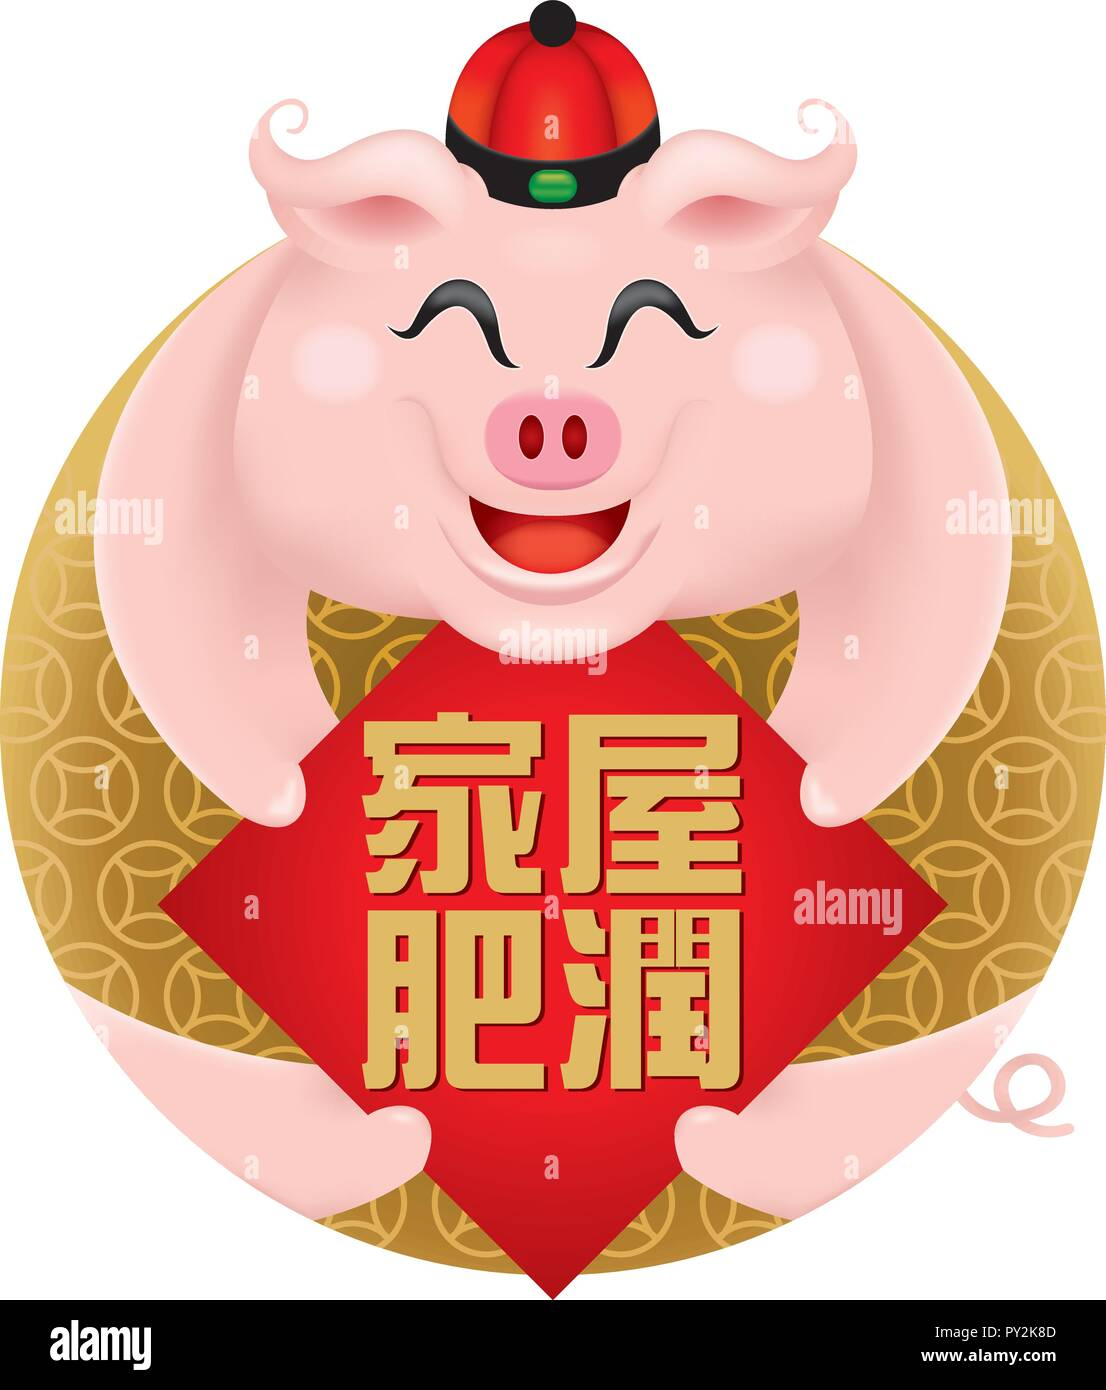 Cute little pig's image for Chinese New Year 2019, also the year of the pig. Caption: Family is harmony and prosperous. - Stock Vector